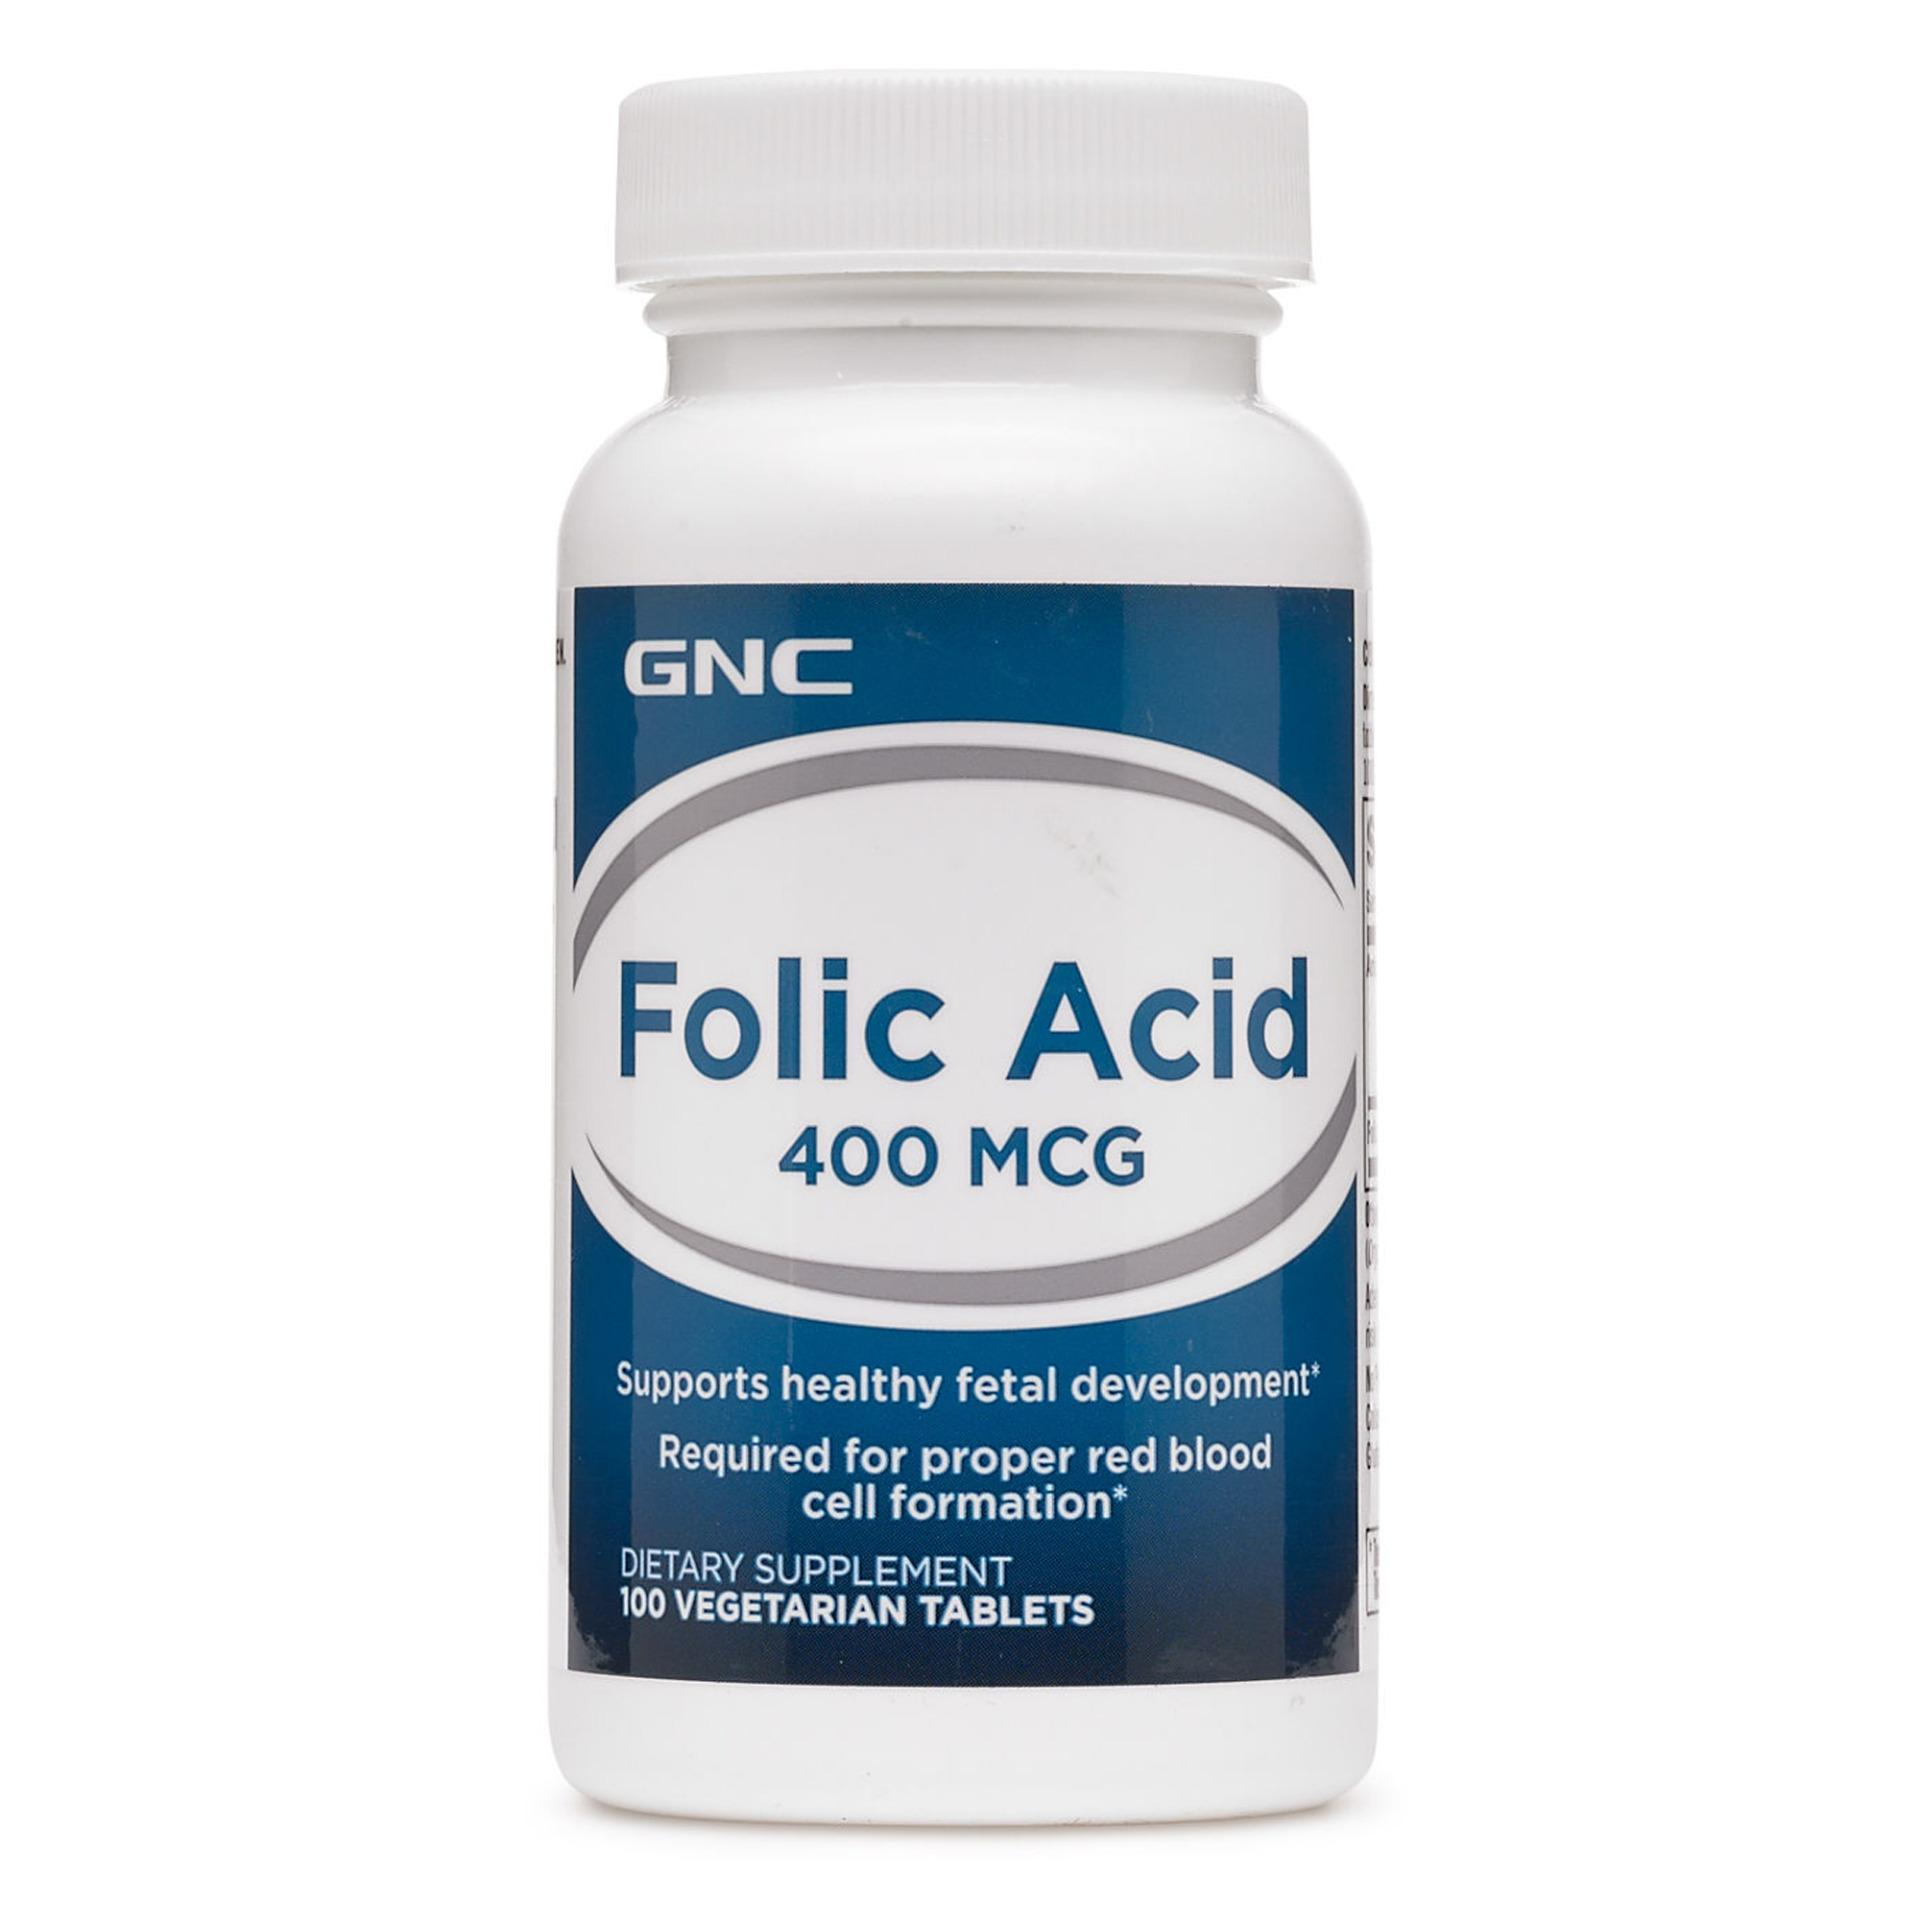 Best Offer Gnc Folic Acid 400 Mcg 100 Tablets